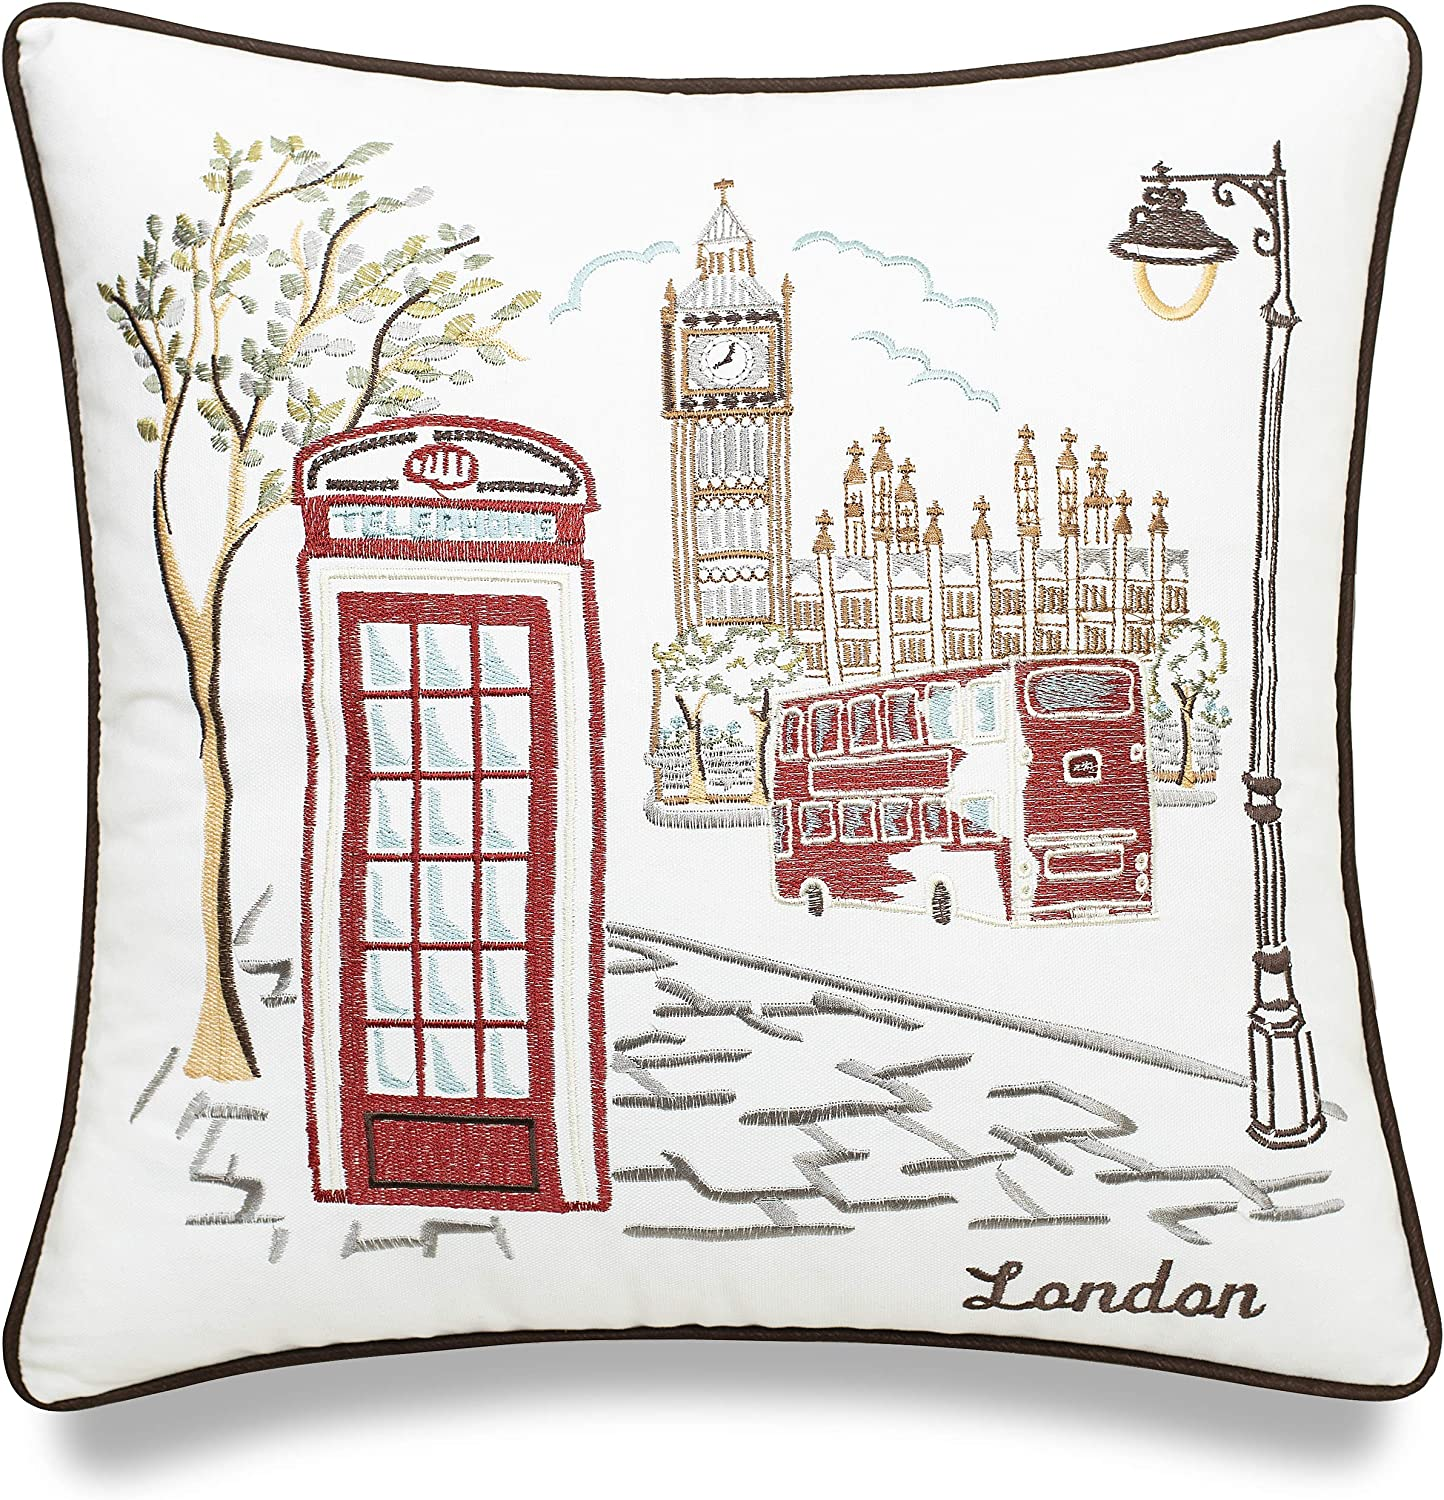 EURASIA DECOR London City Map 18x18 Embroidered Decorative Accent Pillow Cover - Birthday Decor, Graduation, New Home Gift